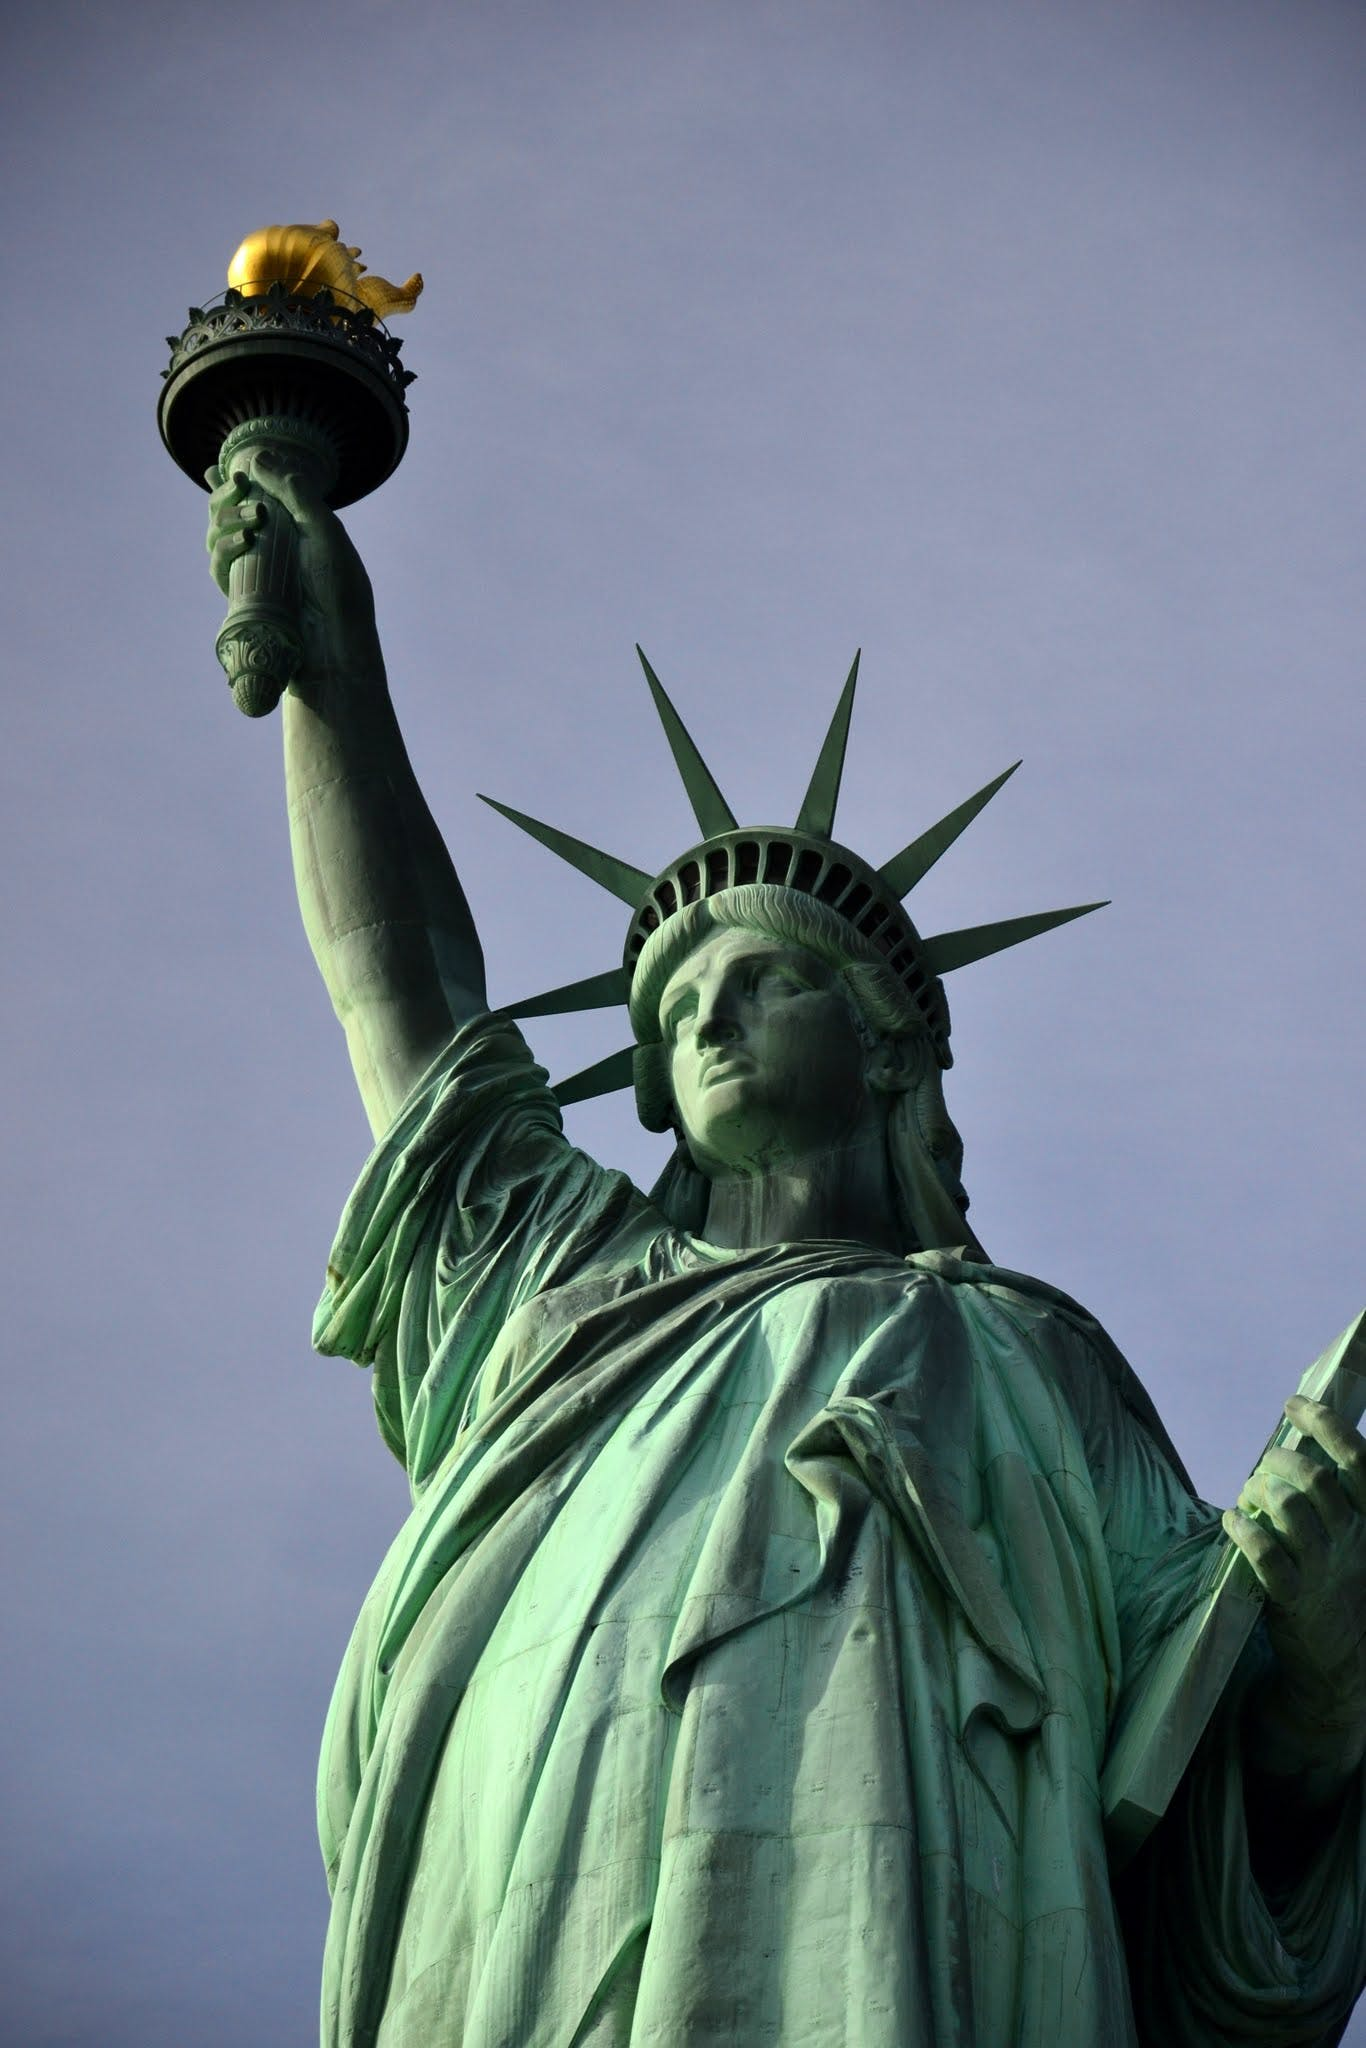 Free stock photo of new york city, statue, Statue of Liberty